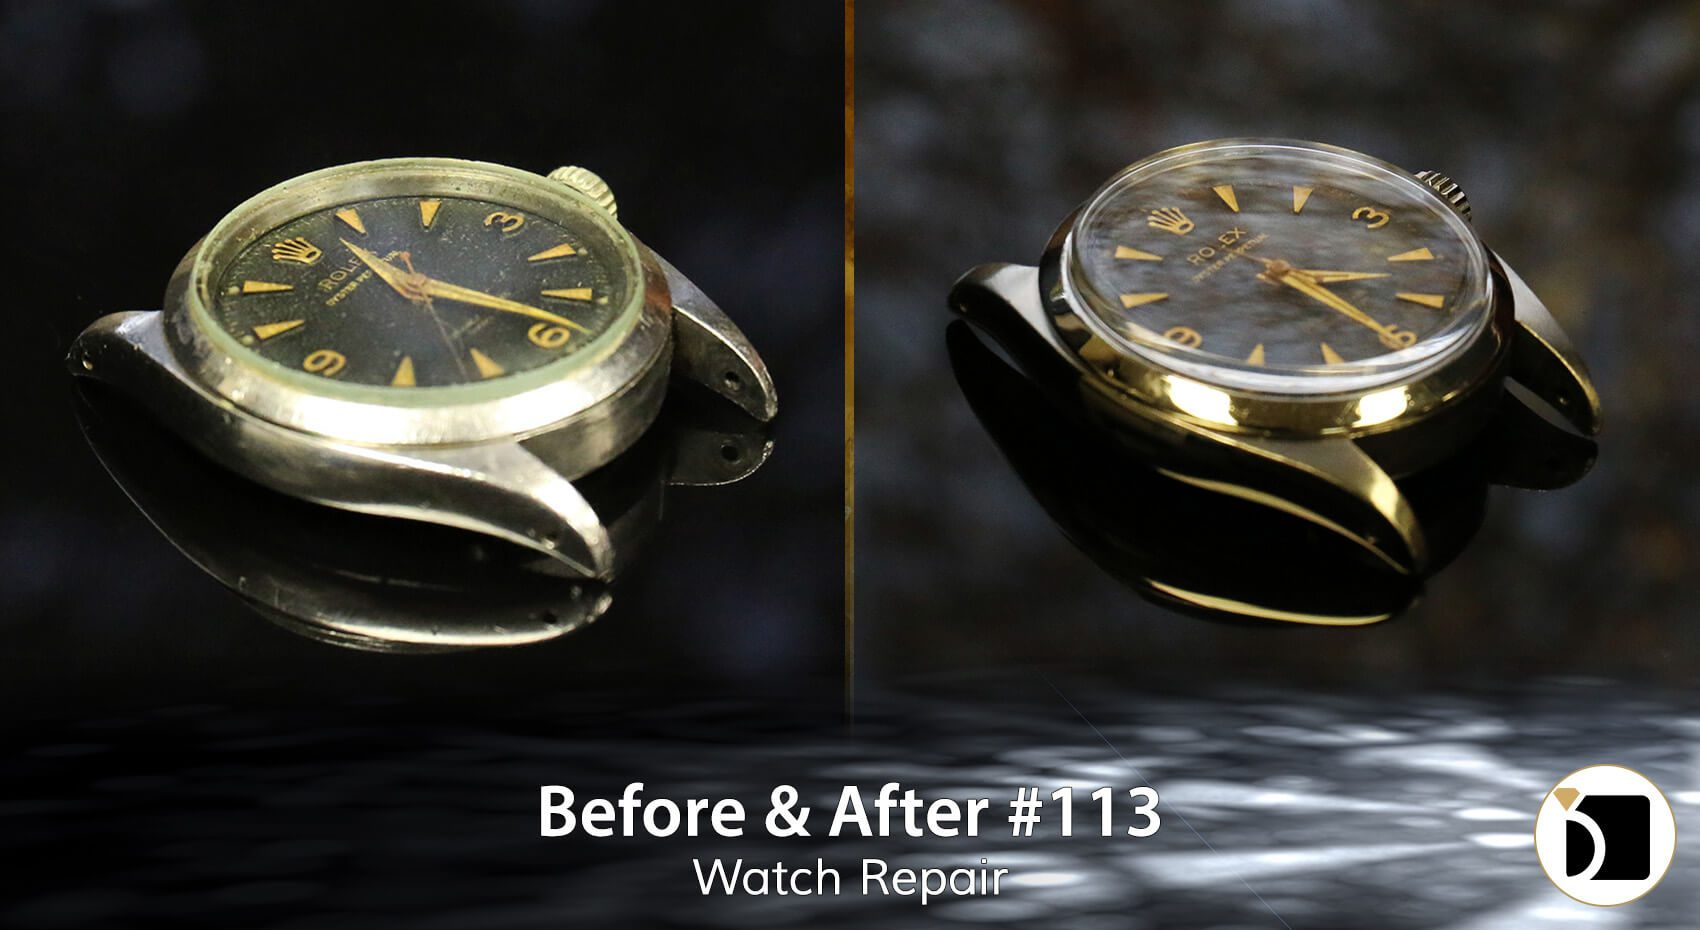 Image Showcasing a rolex watch repair. Before After 112